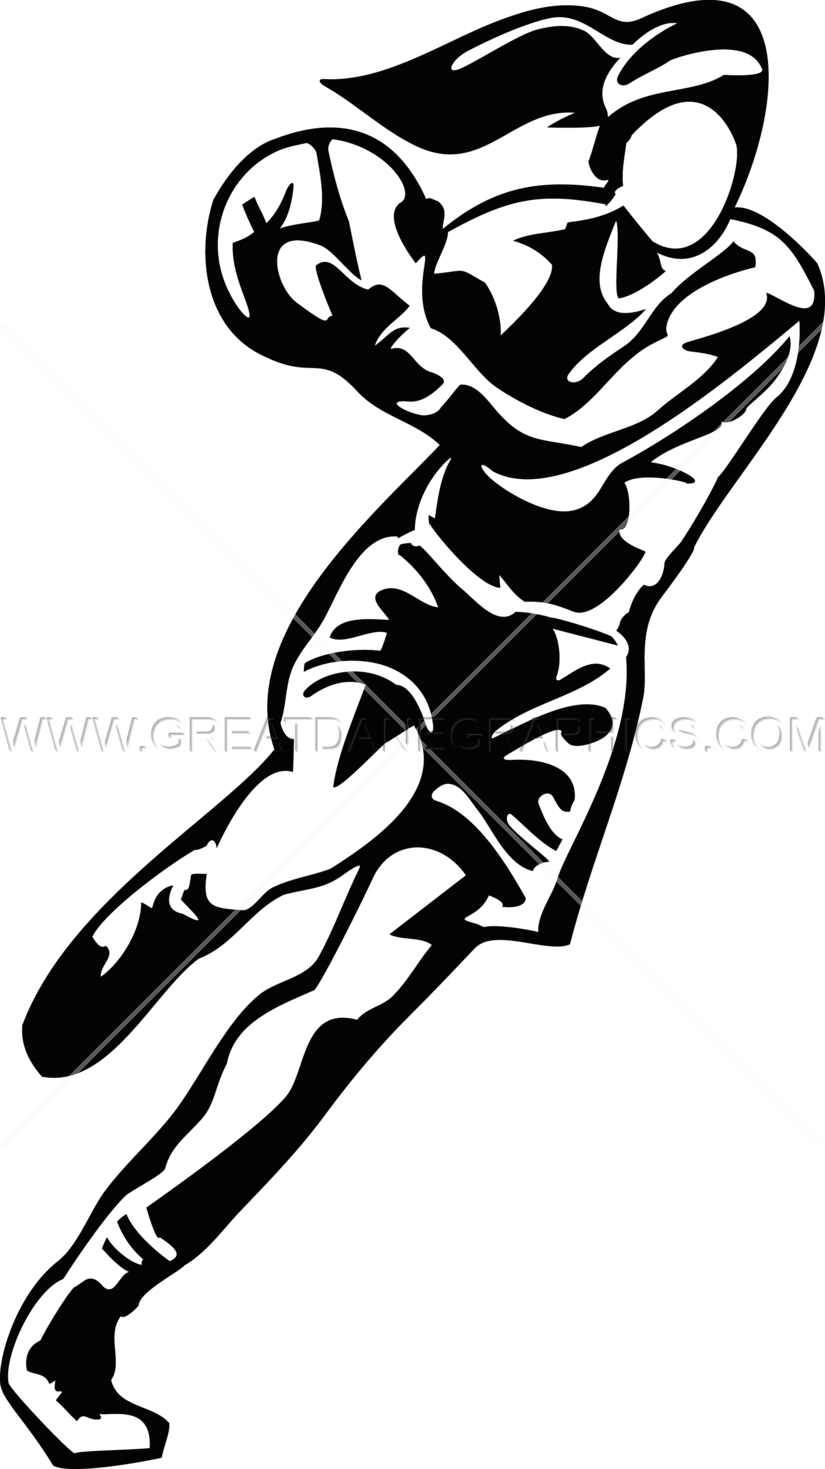 Female basketball clipart clipart library Female Basketball Player | Production Ready Artwork for T-Shirt Printing clipart library